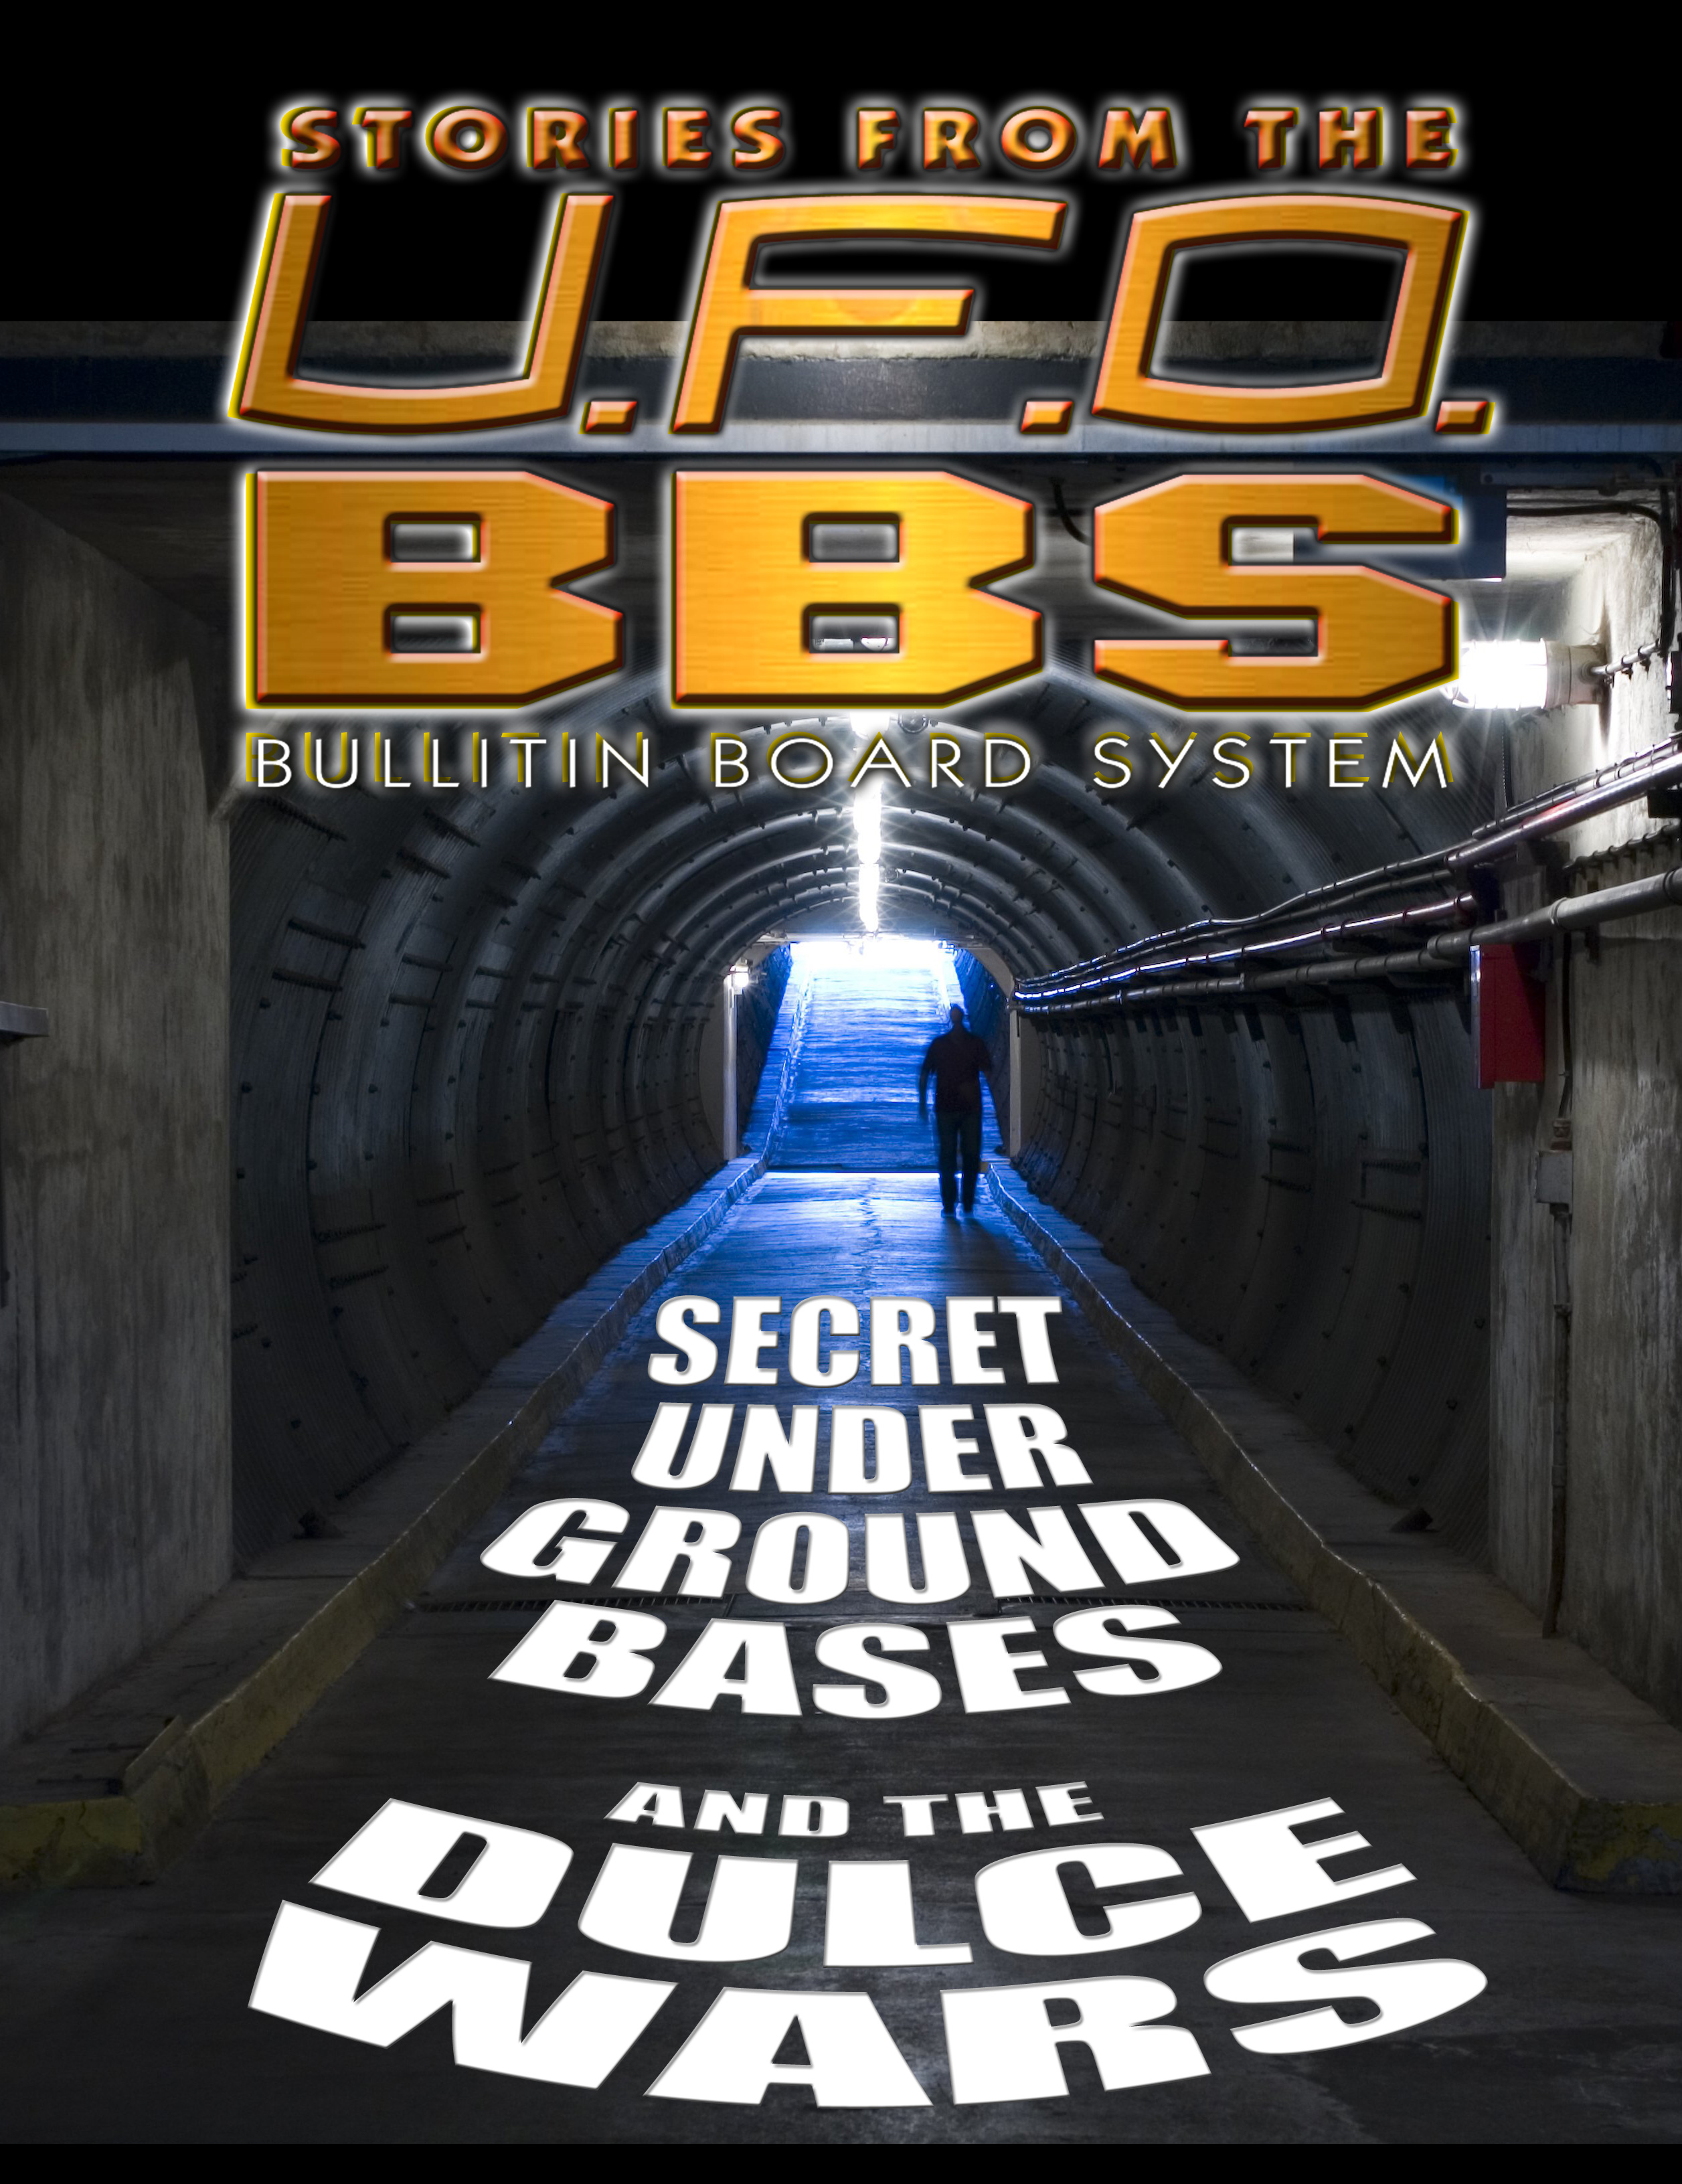 Stories from the UFOBBS